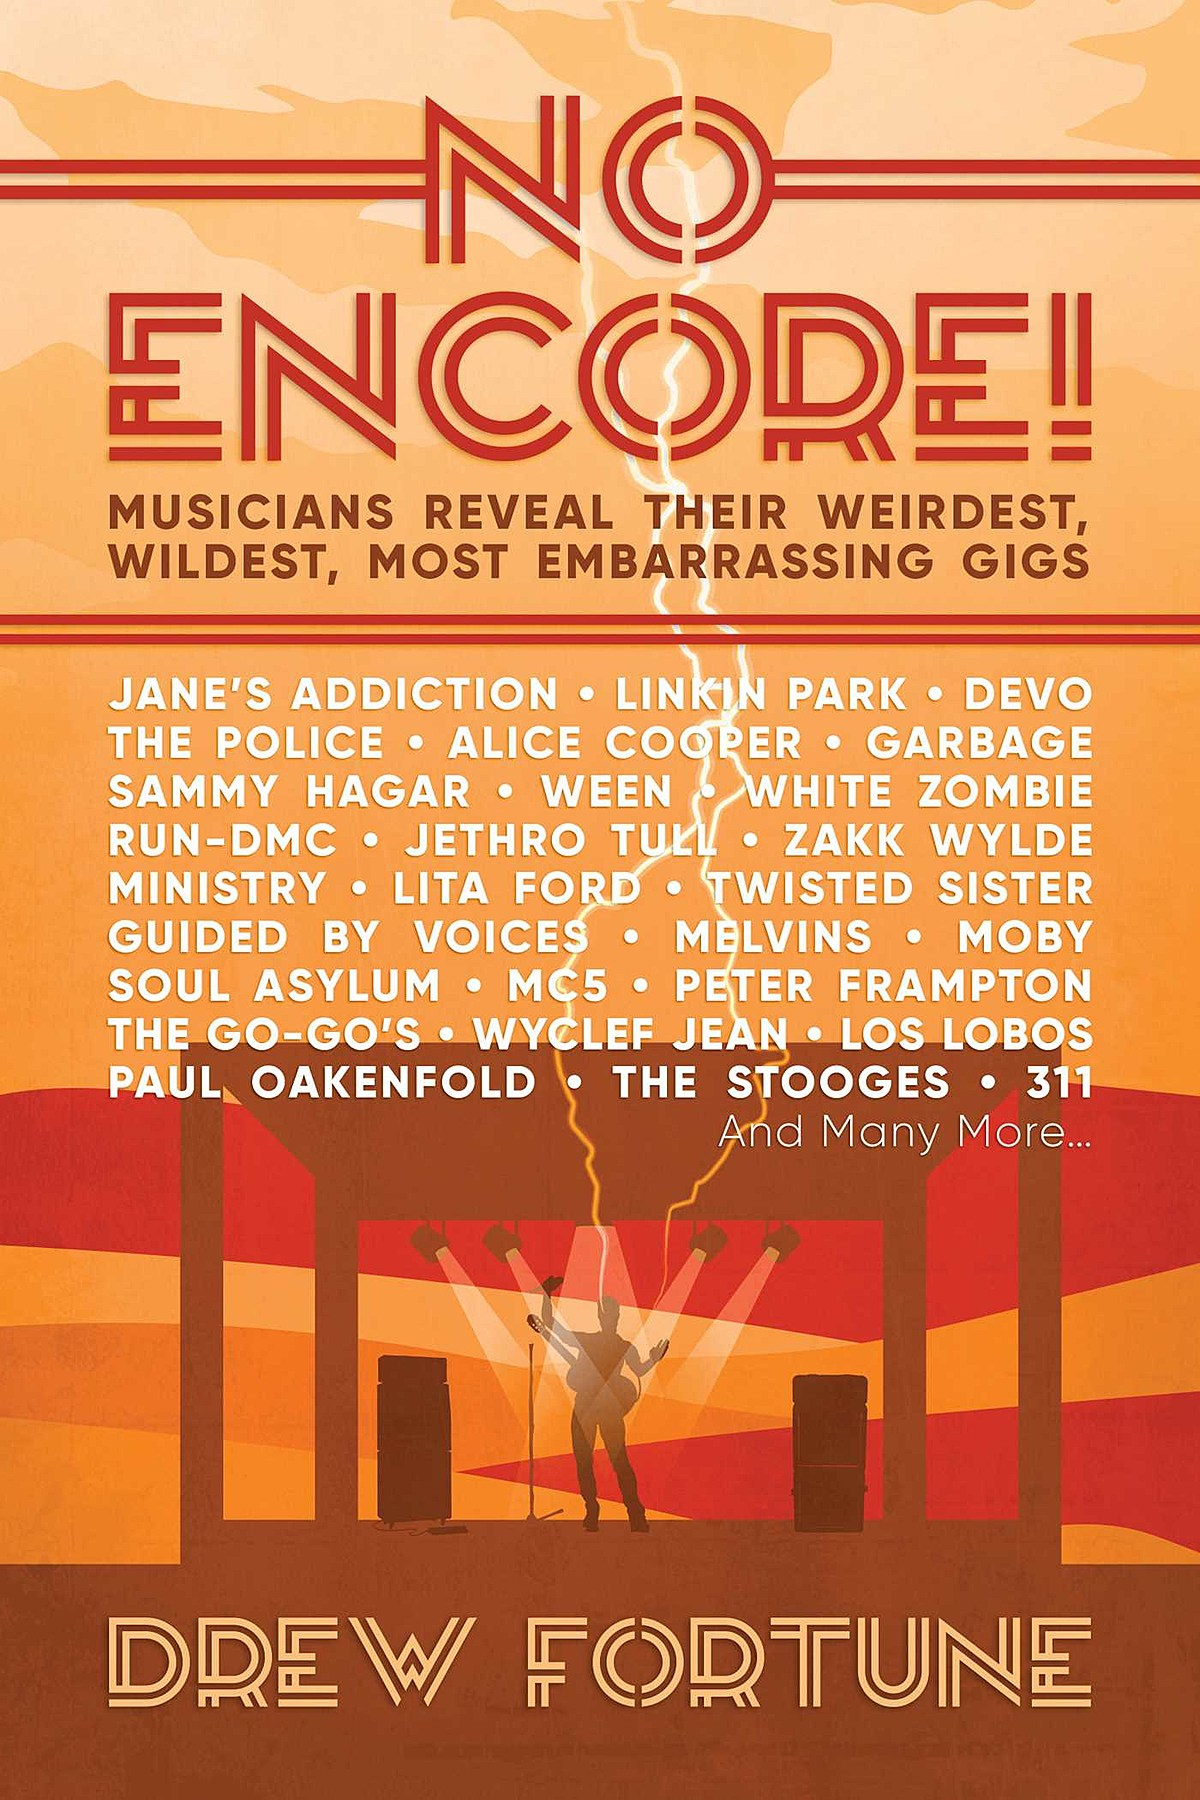 Ween, GBV, Melvins, Devo, MC5 more talk worst, weirdest gigs in new book 'No Encore!'